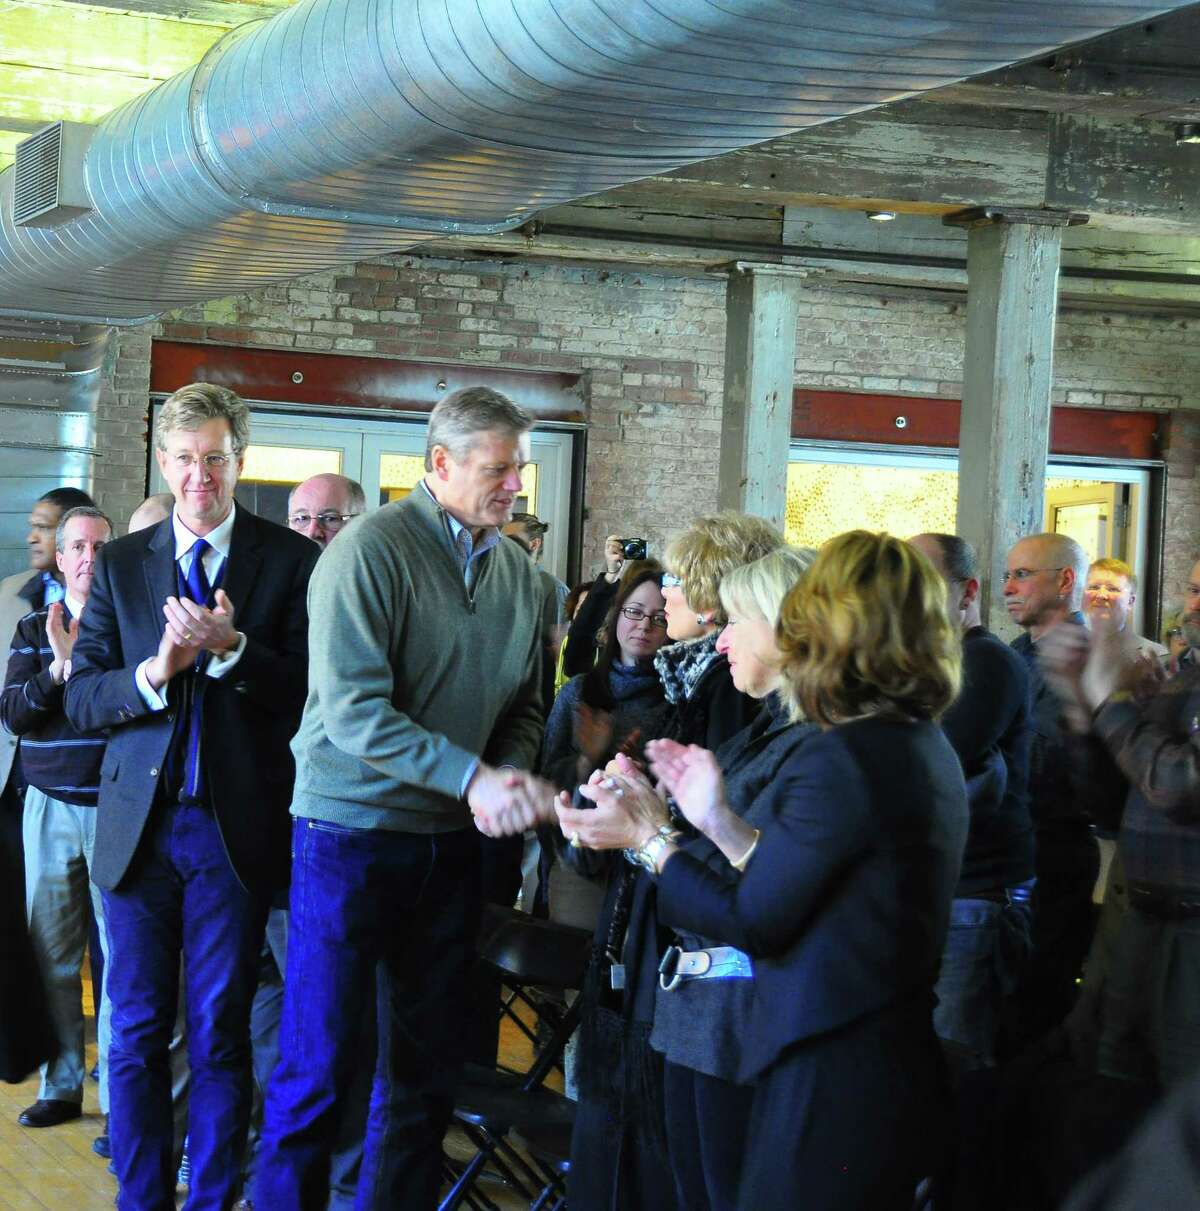 New Masscachusett Gov. Charlie Baker, center, greets visitors at Mass MoCA on Saturday, Jan. 10, 2015, during part of Baker's Spotlight on Excellence tour. The museum's Phase III expansion, due to be completed for an opening in early 2017, will almost double to exhibition space, to 260,000 square feet. The project is being paid for by $30 million in private funding raised by the museum and a $25.4 million state grant announced in August. The museum's director, Joseph Thompson, is behind baker. (Photo by Jason Kraus/Special to the Times Union)